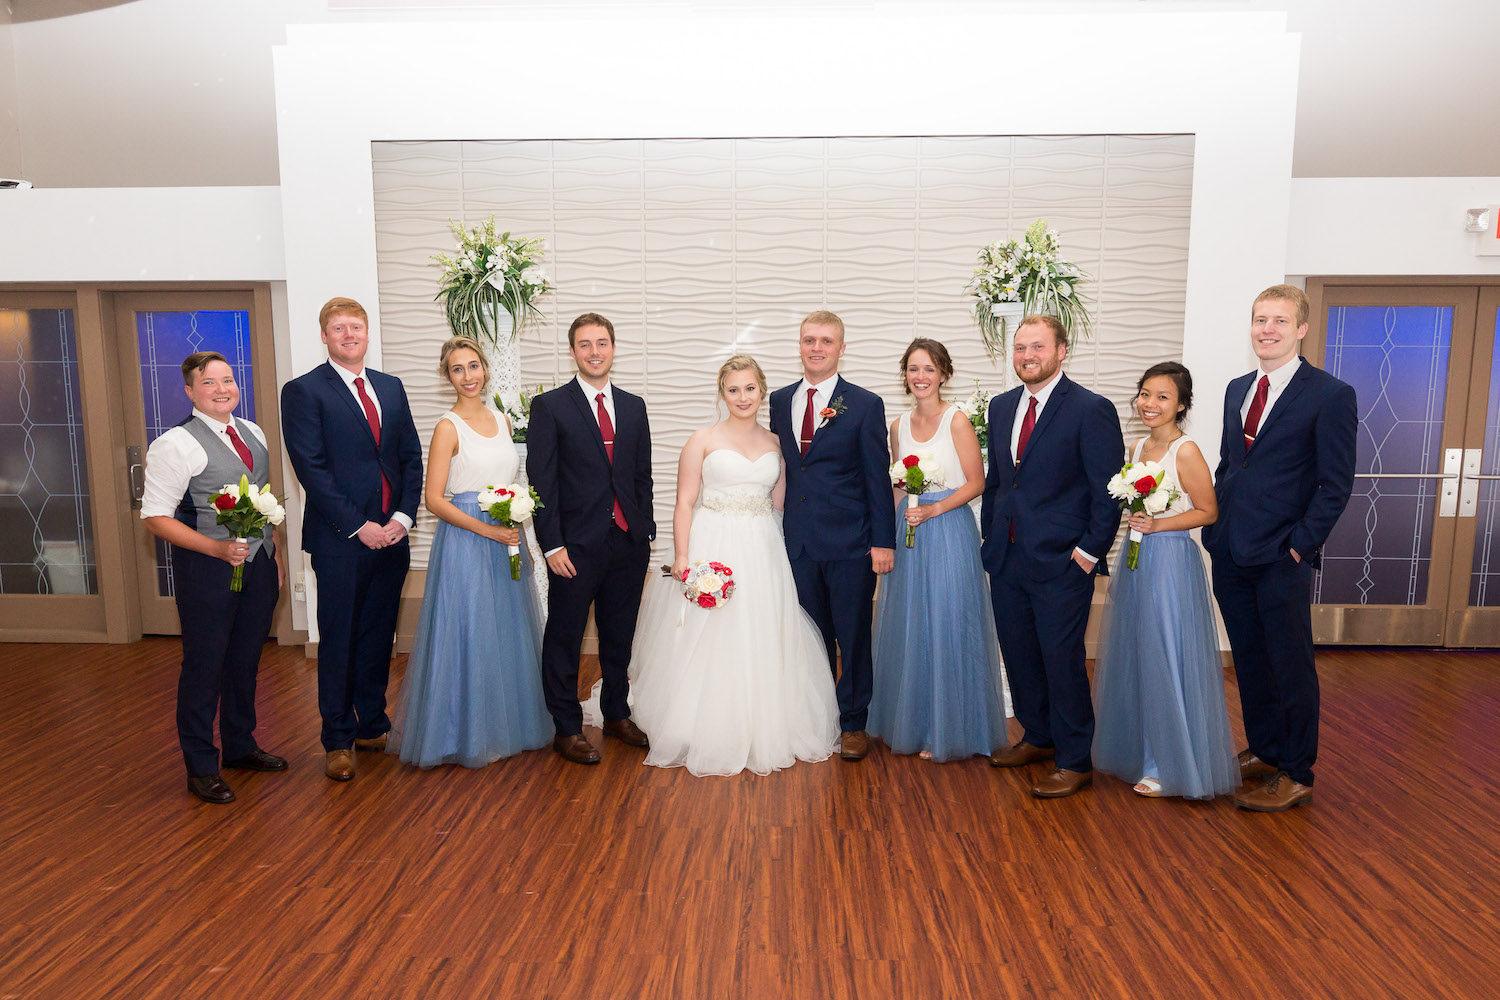 Rosehenge wedding, Lakeville wedding venue, affordable wedding venue in south Minnesota, bridesmaids in separates with dusty blue tulle skirts